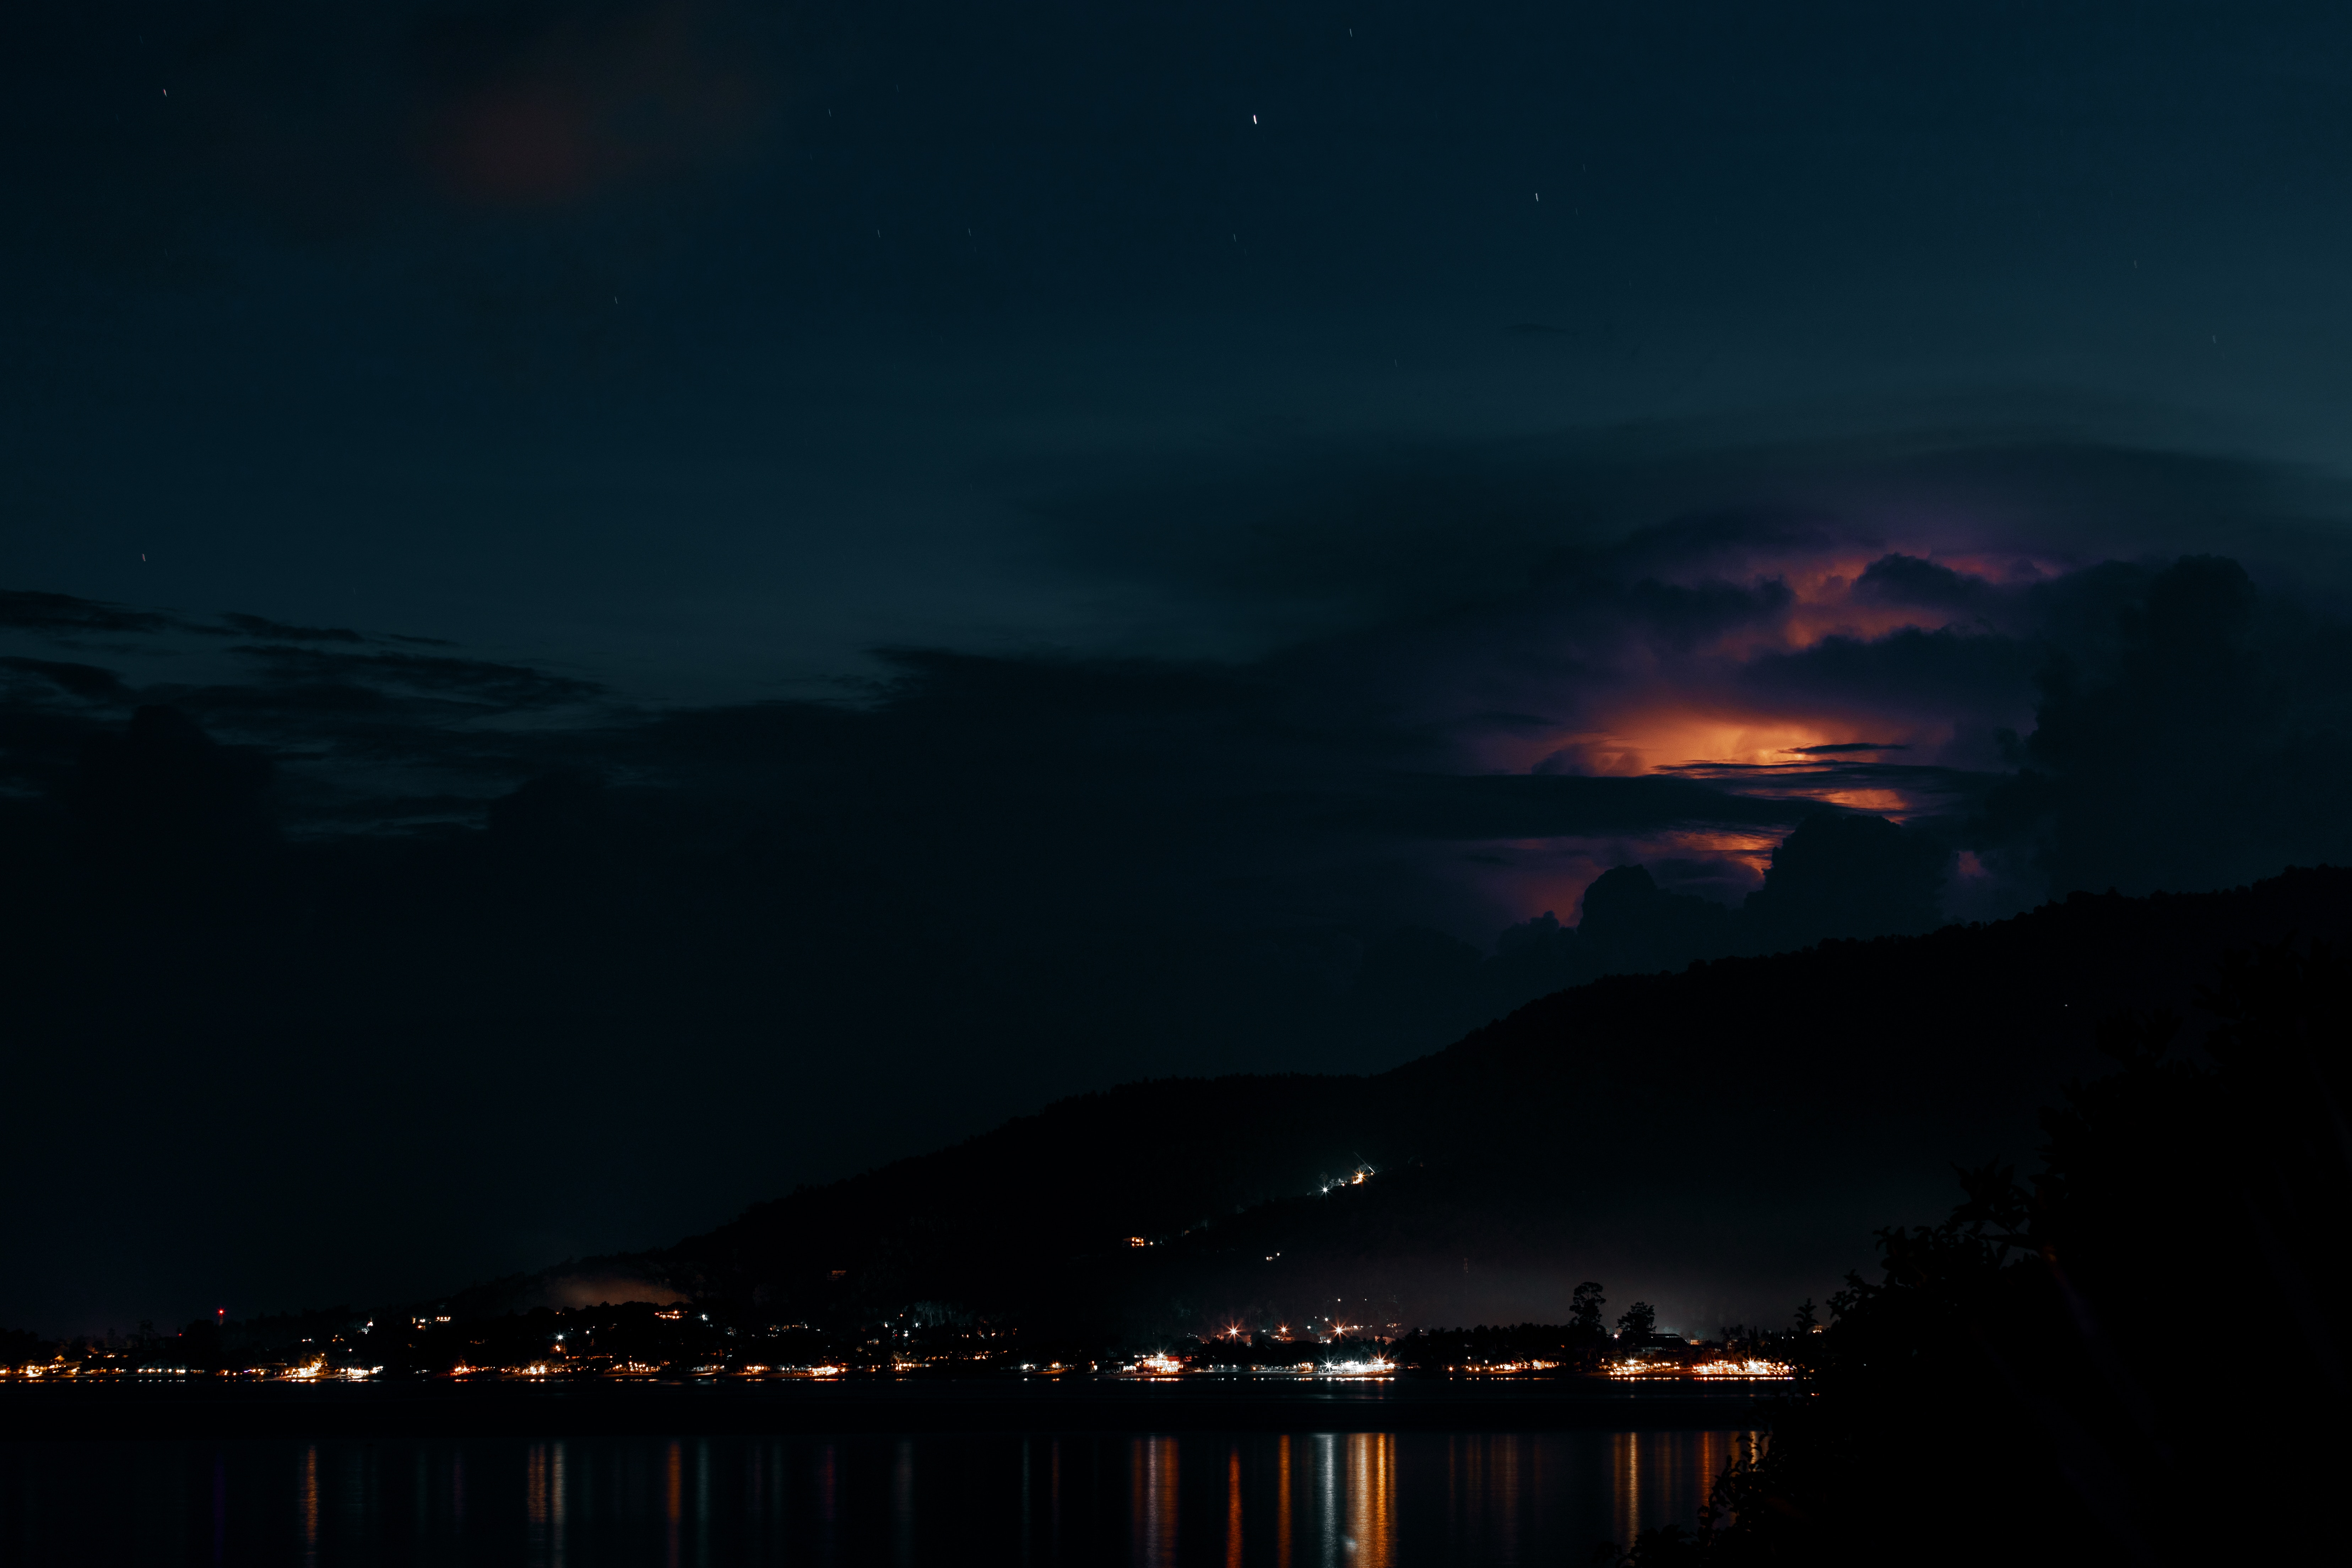 144903 download wallpaper Nature, Night, Sky, Clouds, Horizon, Rivers, Dark screensavers and pictures for free